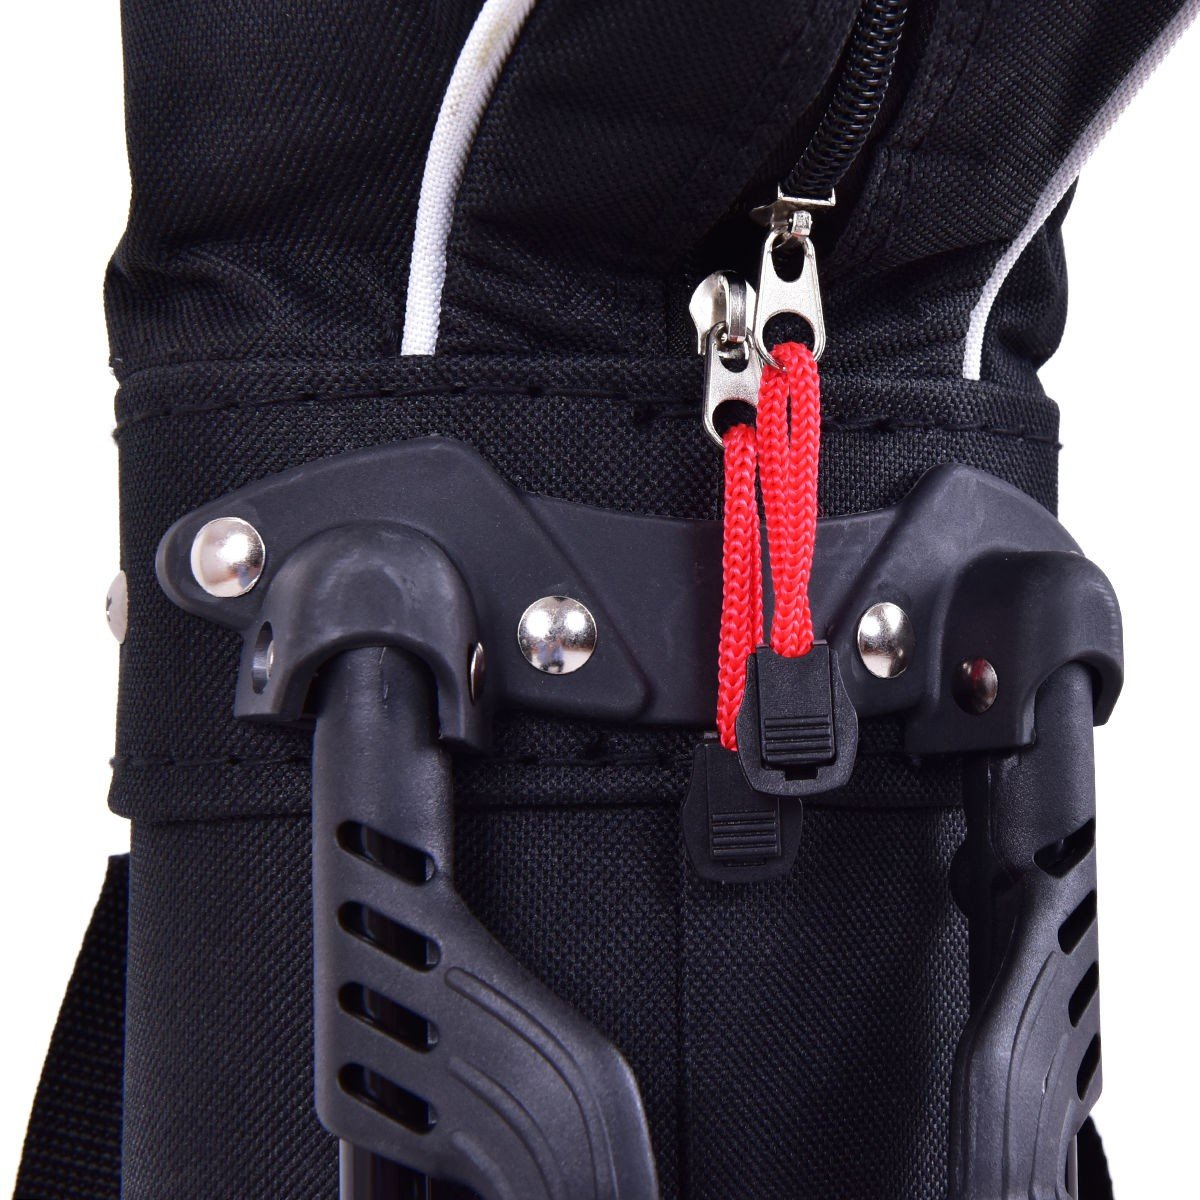 5'' Sunday Golf Bag Stand 7 Clubs Carry Pockets - By Choice Products by By Choice Products (Image #7)